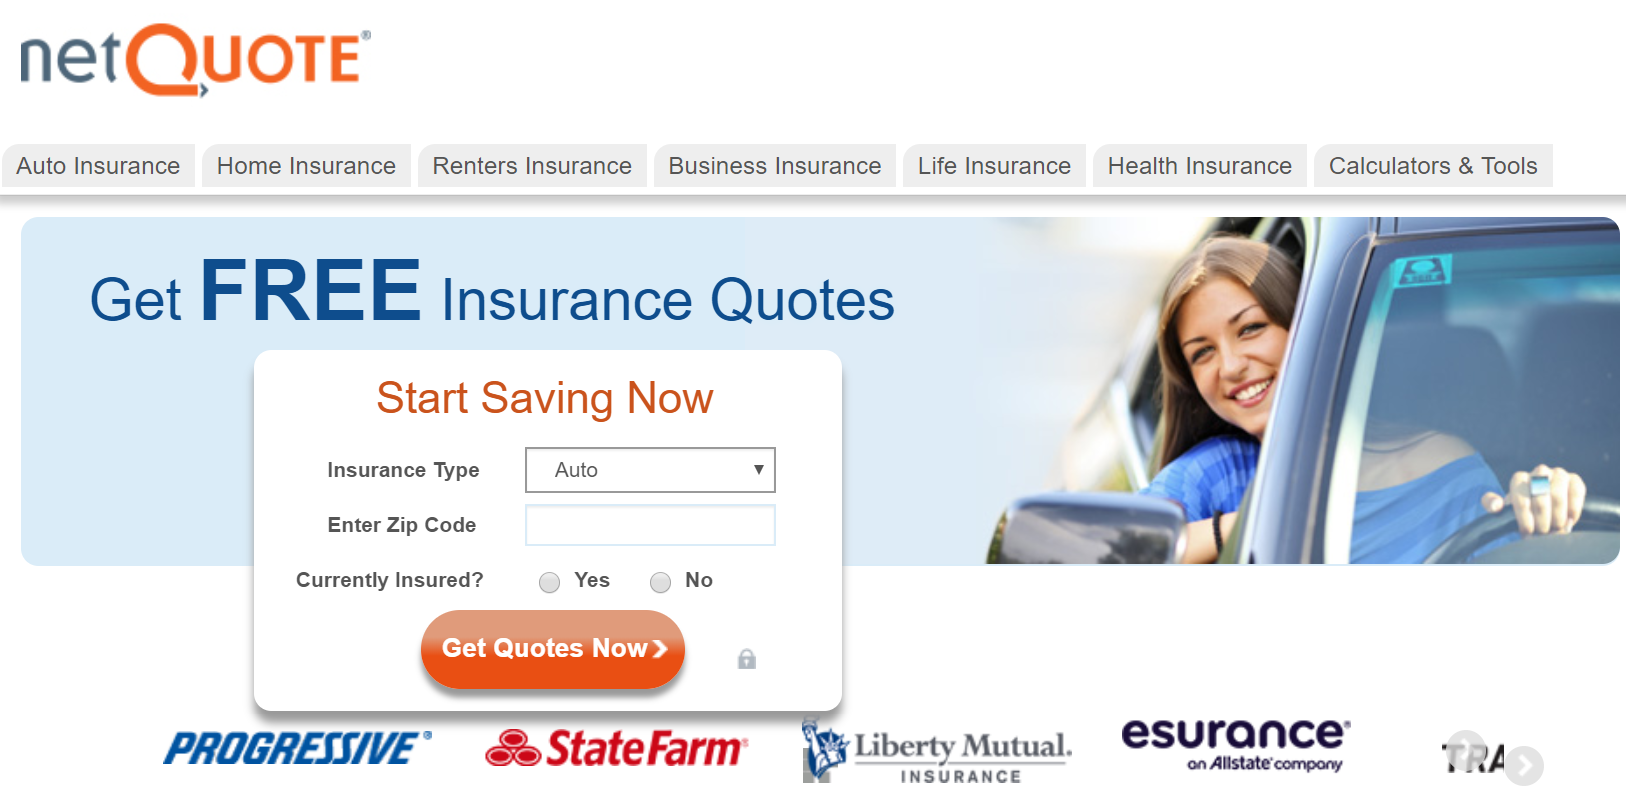 net quote insurance landing page